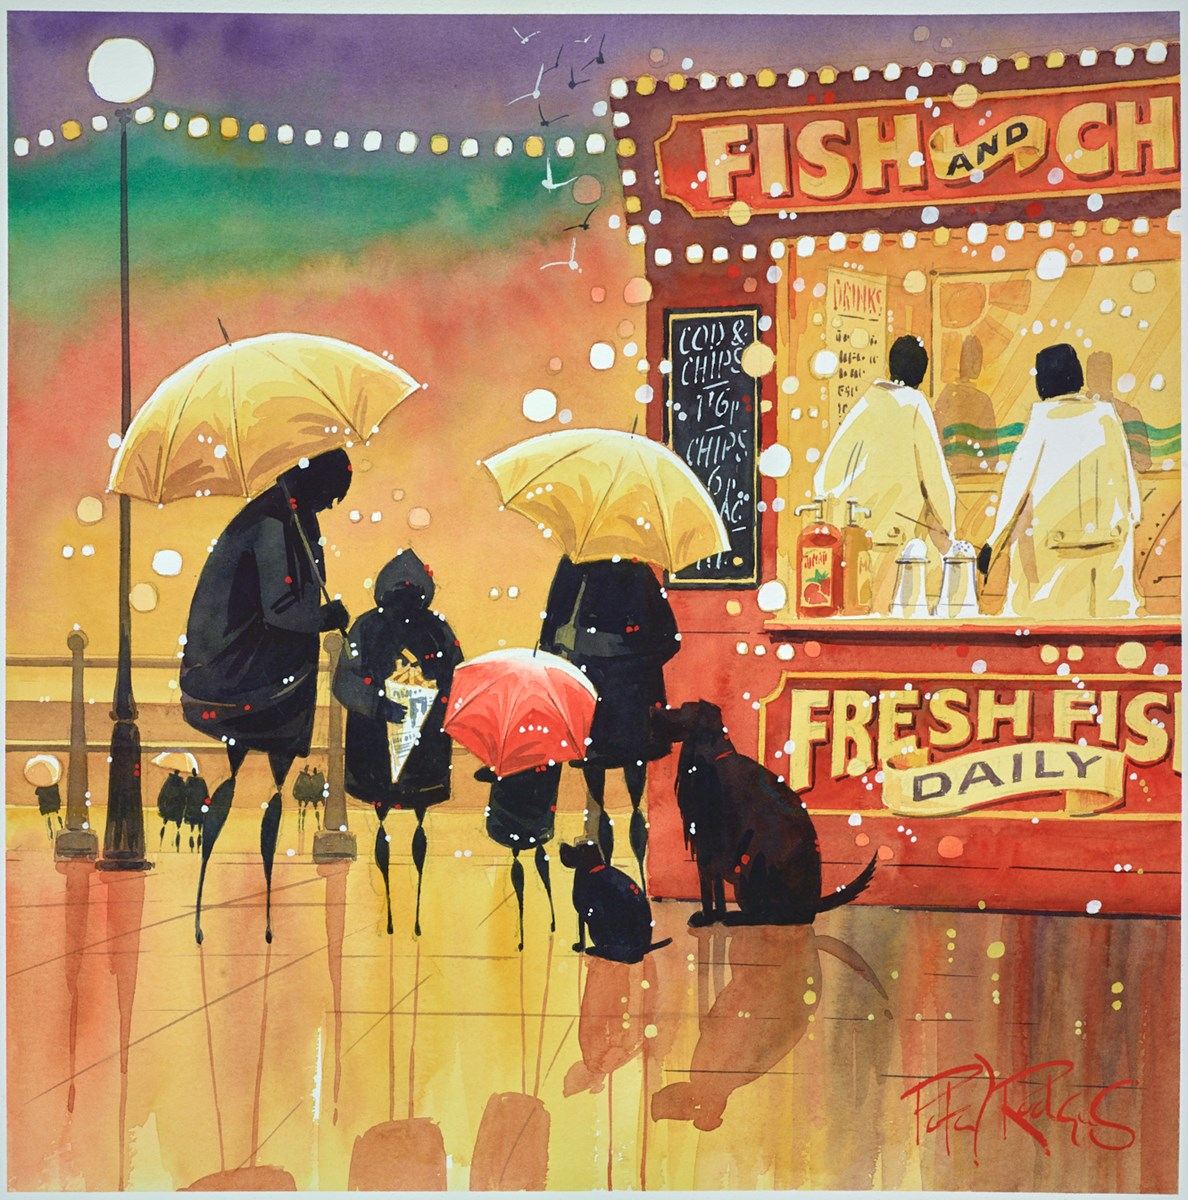 Just One Chip by peter j rodgers -  sized 16x16 inches. Available from Whitewall Galleries